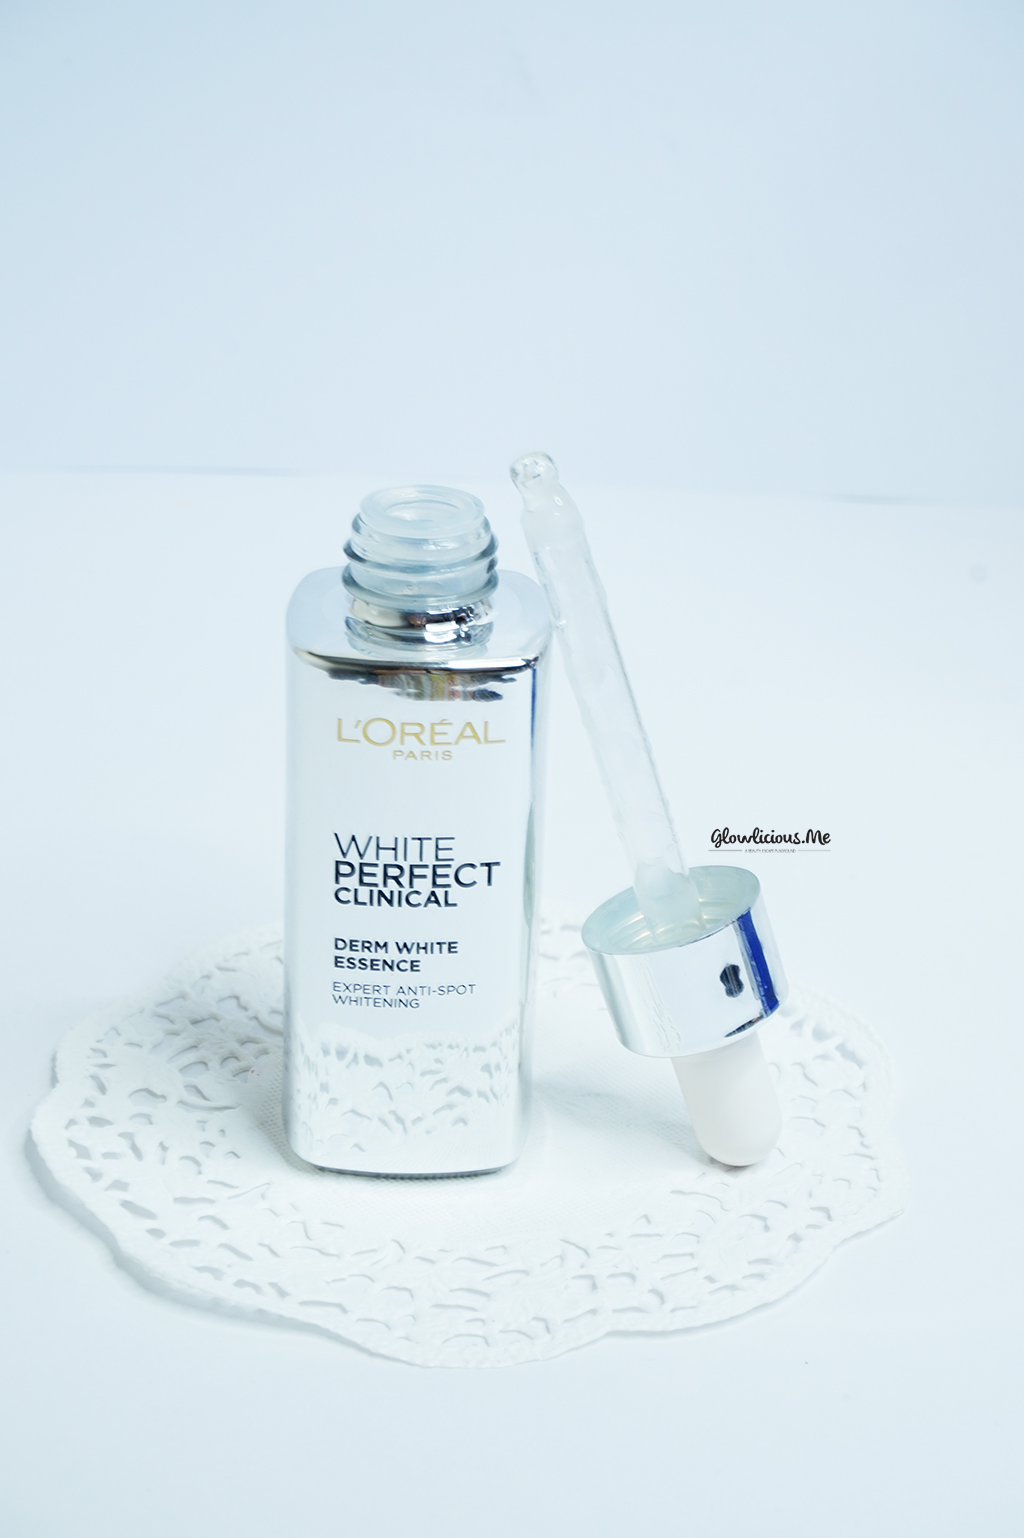 L'Oreal White Perfect Clinical Derm White Essence